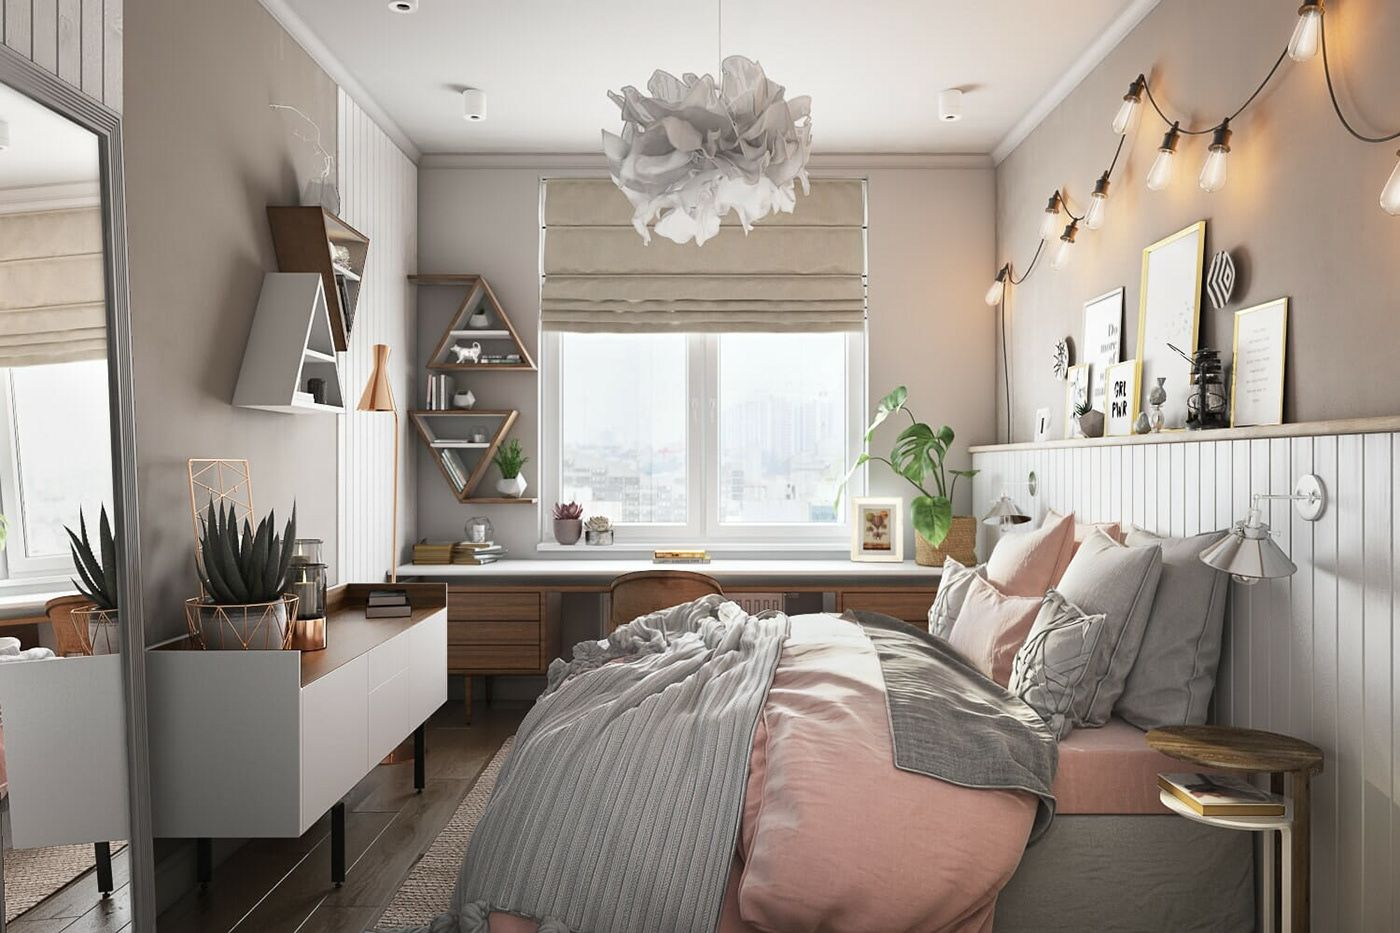 3D Architectural Rendering For A Refined Bedroom on